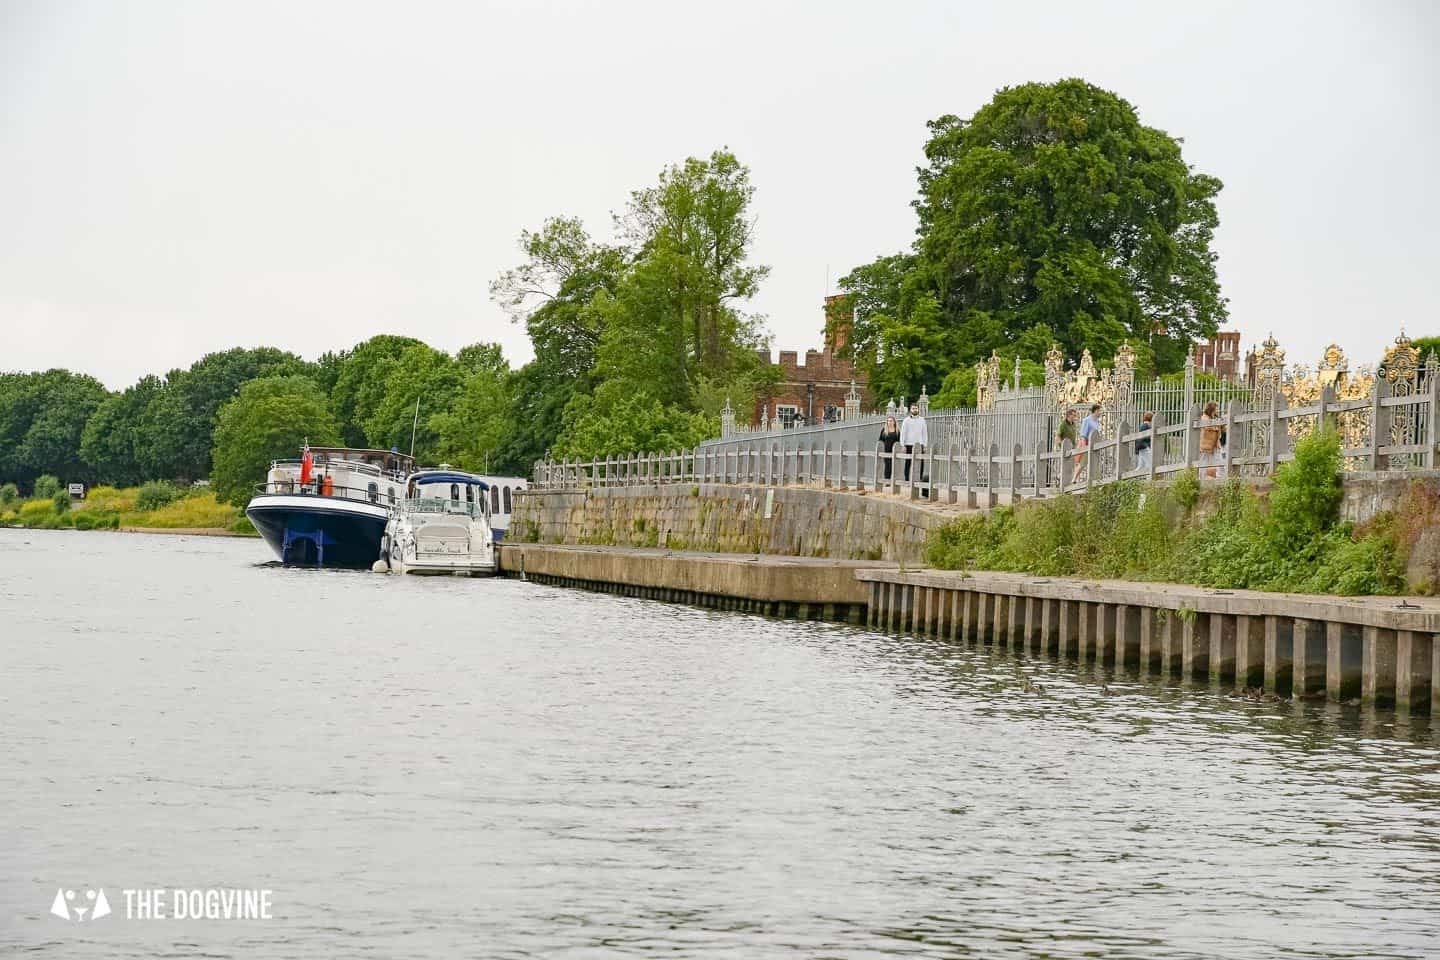 Dog-friendly Go Boat Kingston Upon Thames 10